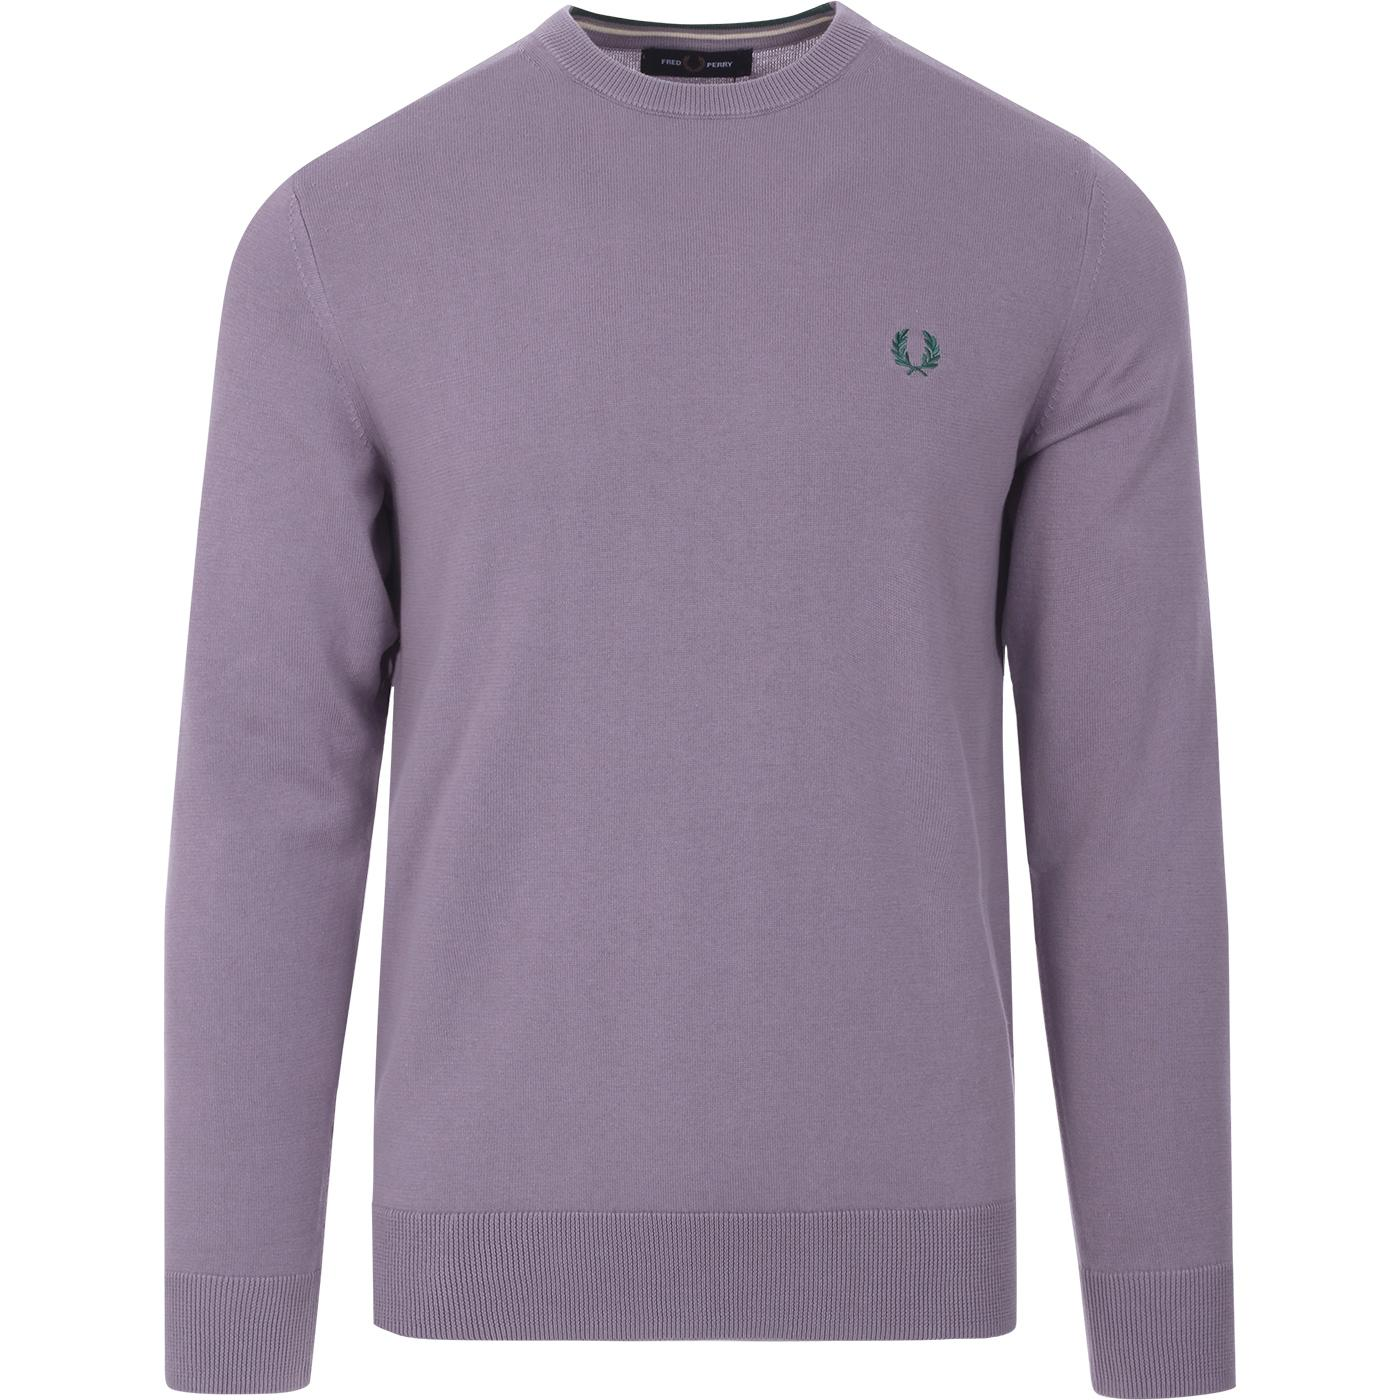 FRED PERRY Mod Crew Neck Jumper (Lavender Ash)